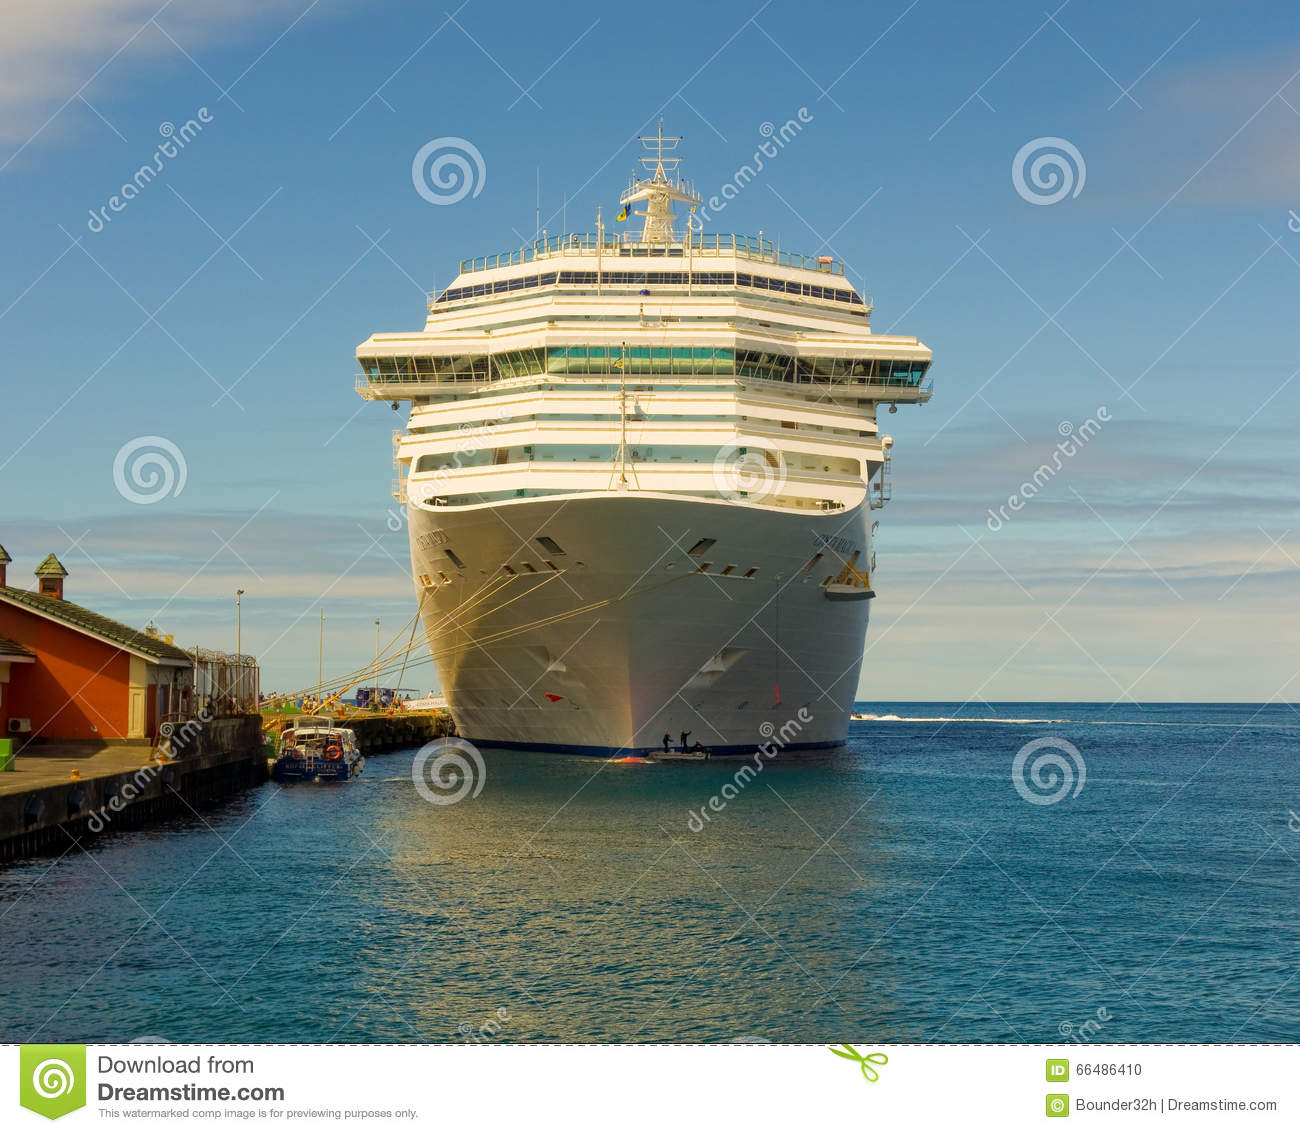 The Cruise Ship Costa Magica Calling At Kingstown Port In